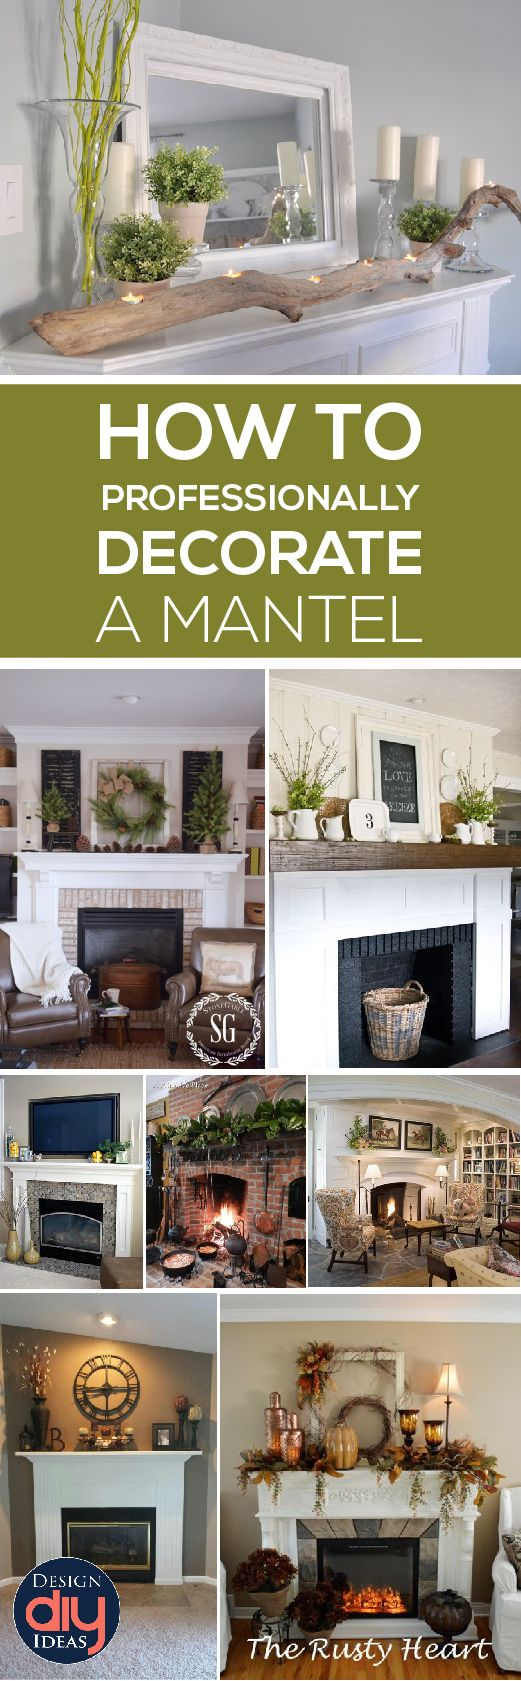 How To Professionally Decorate A Mantel